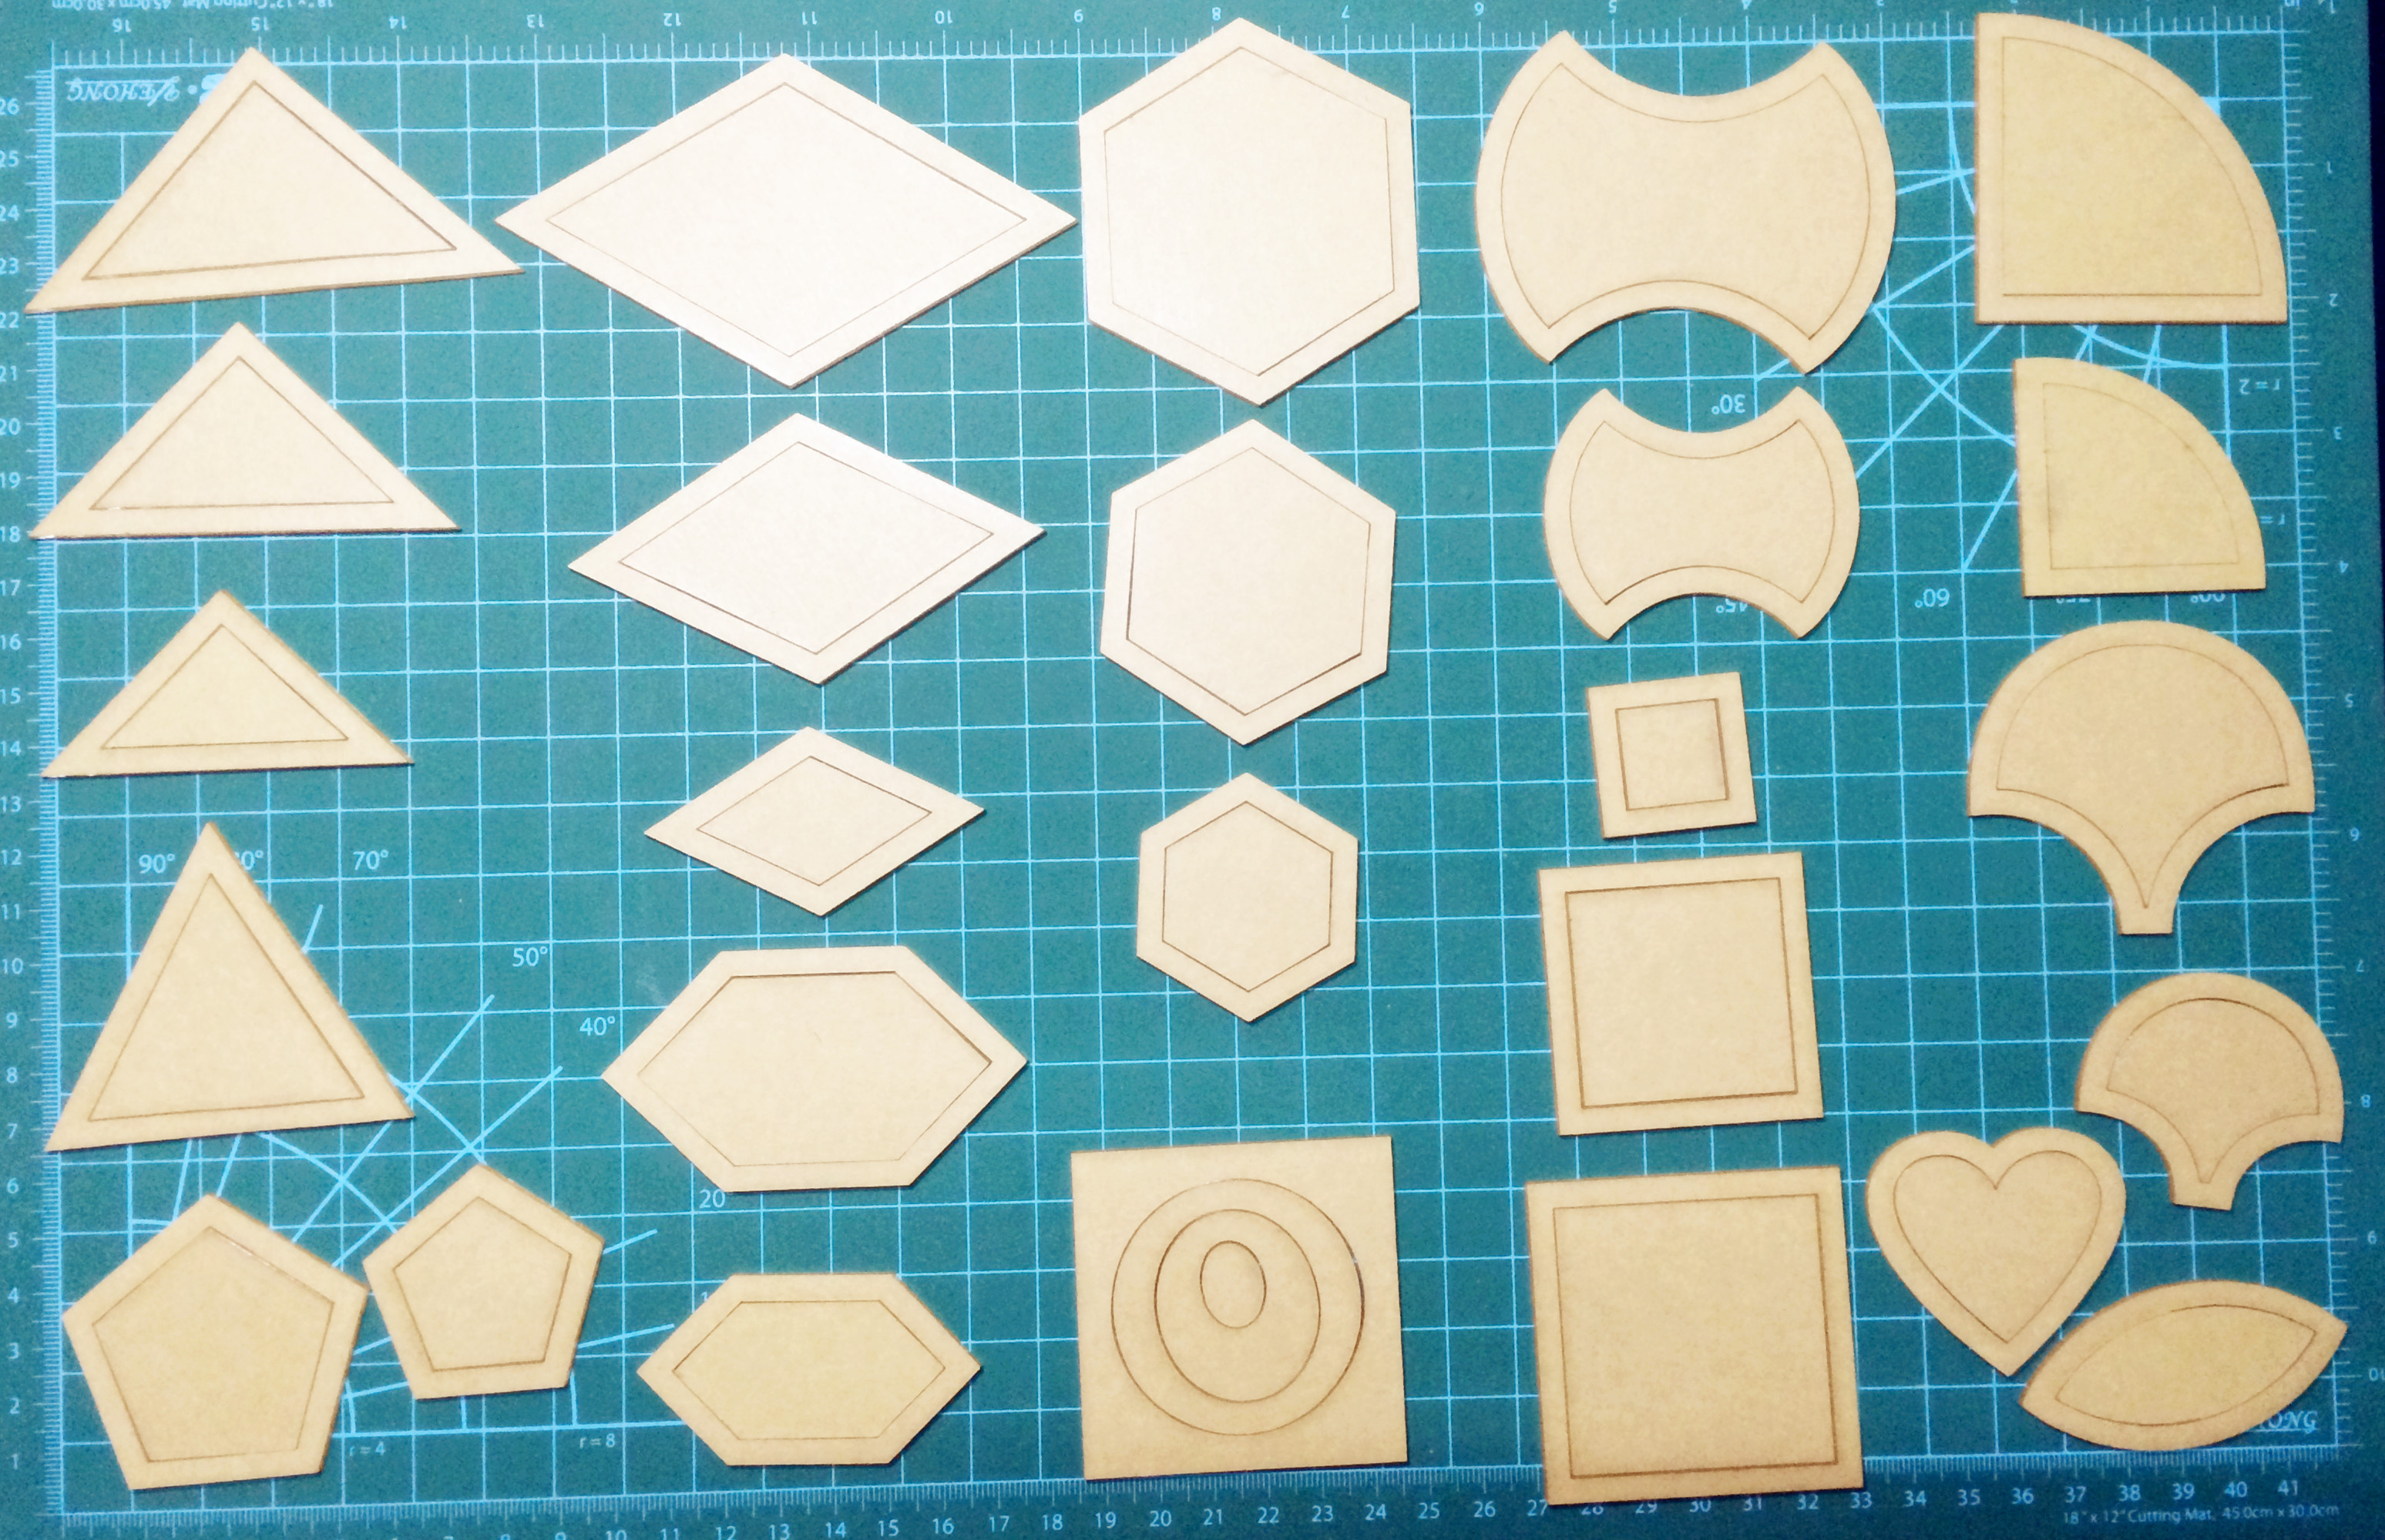 Reusable Quilt Templates Plastic Tool for Patchwork Quilter 27 models useful